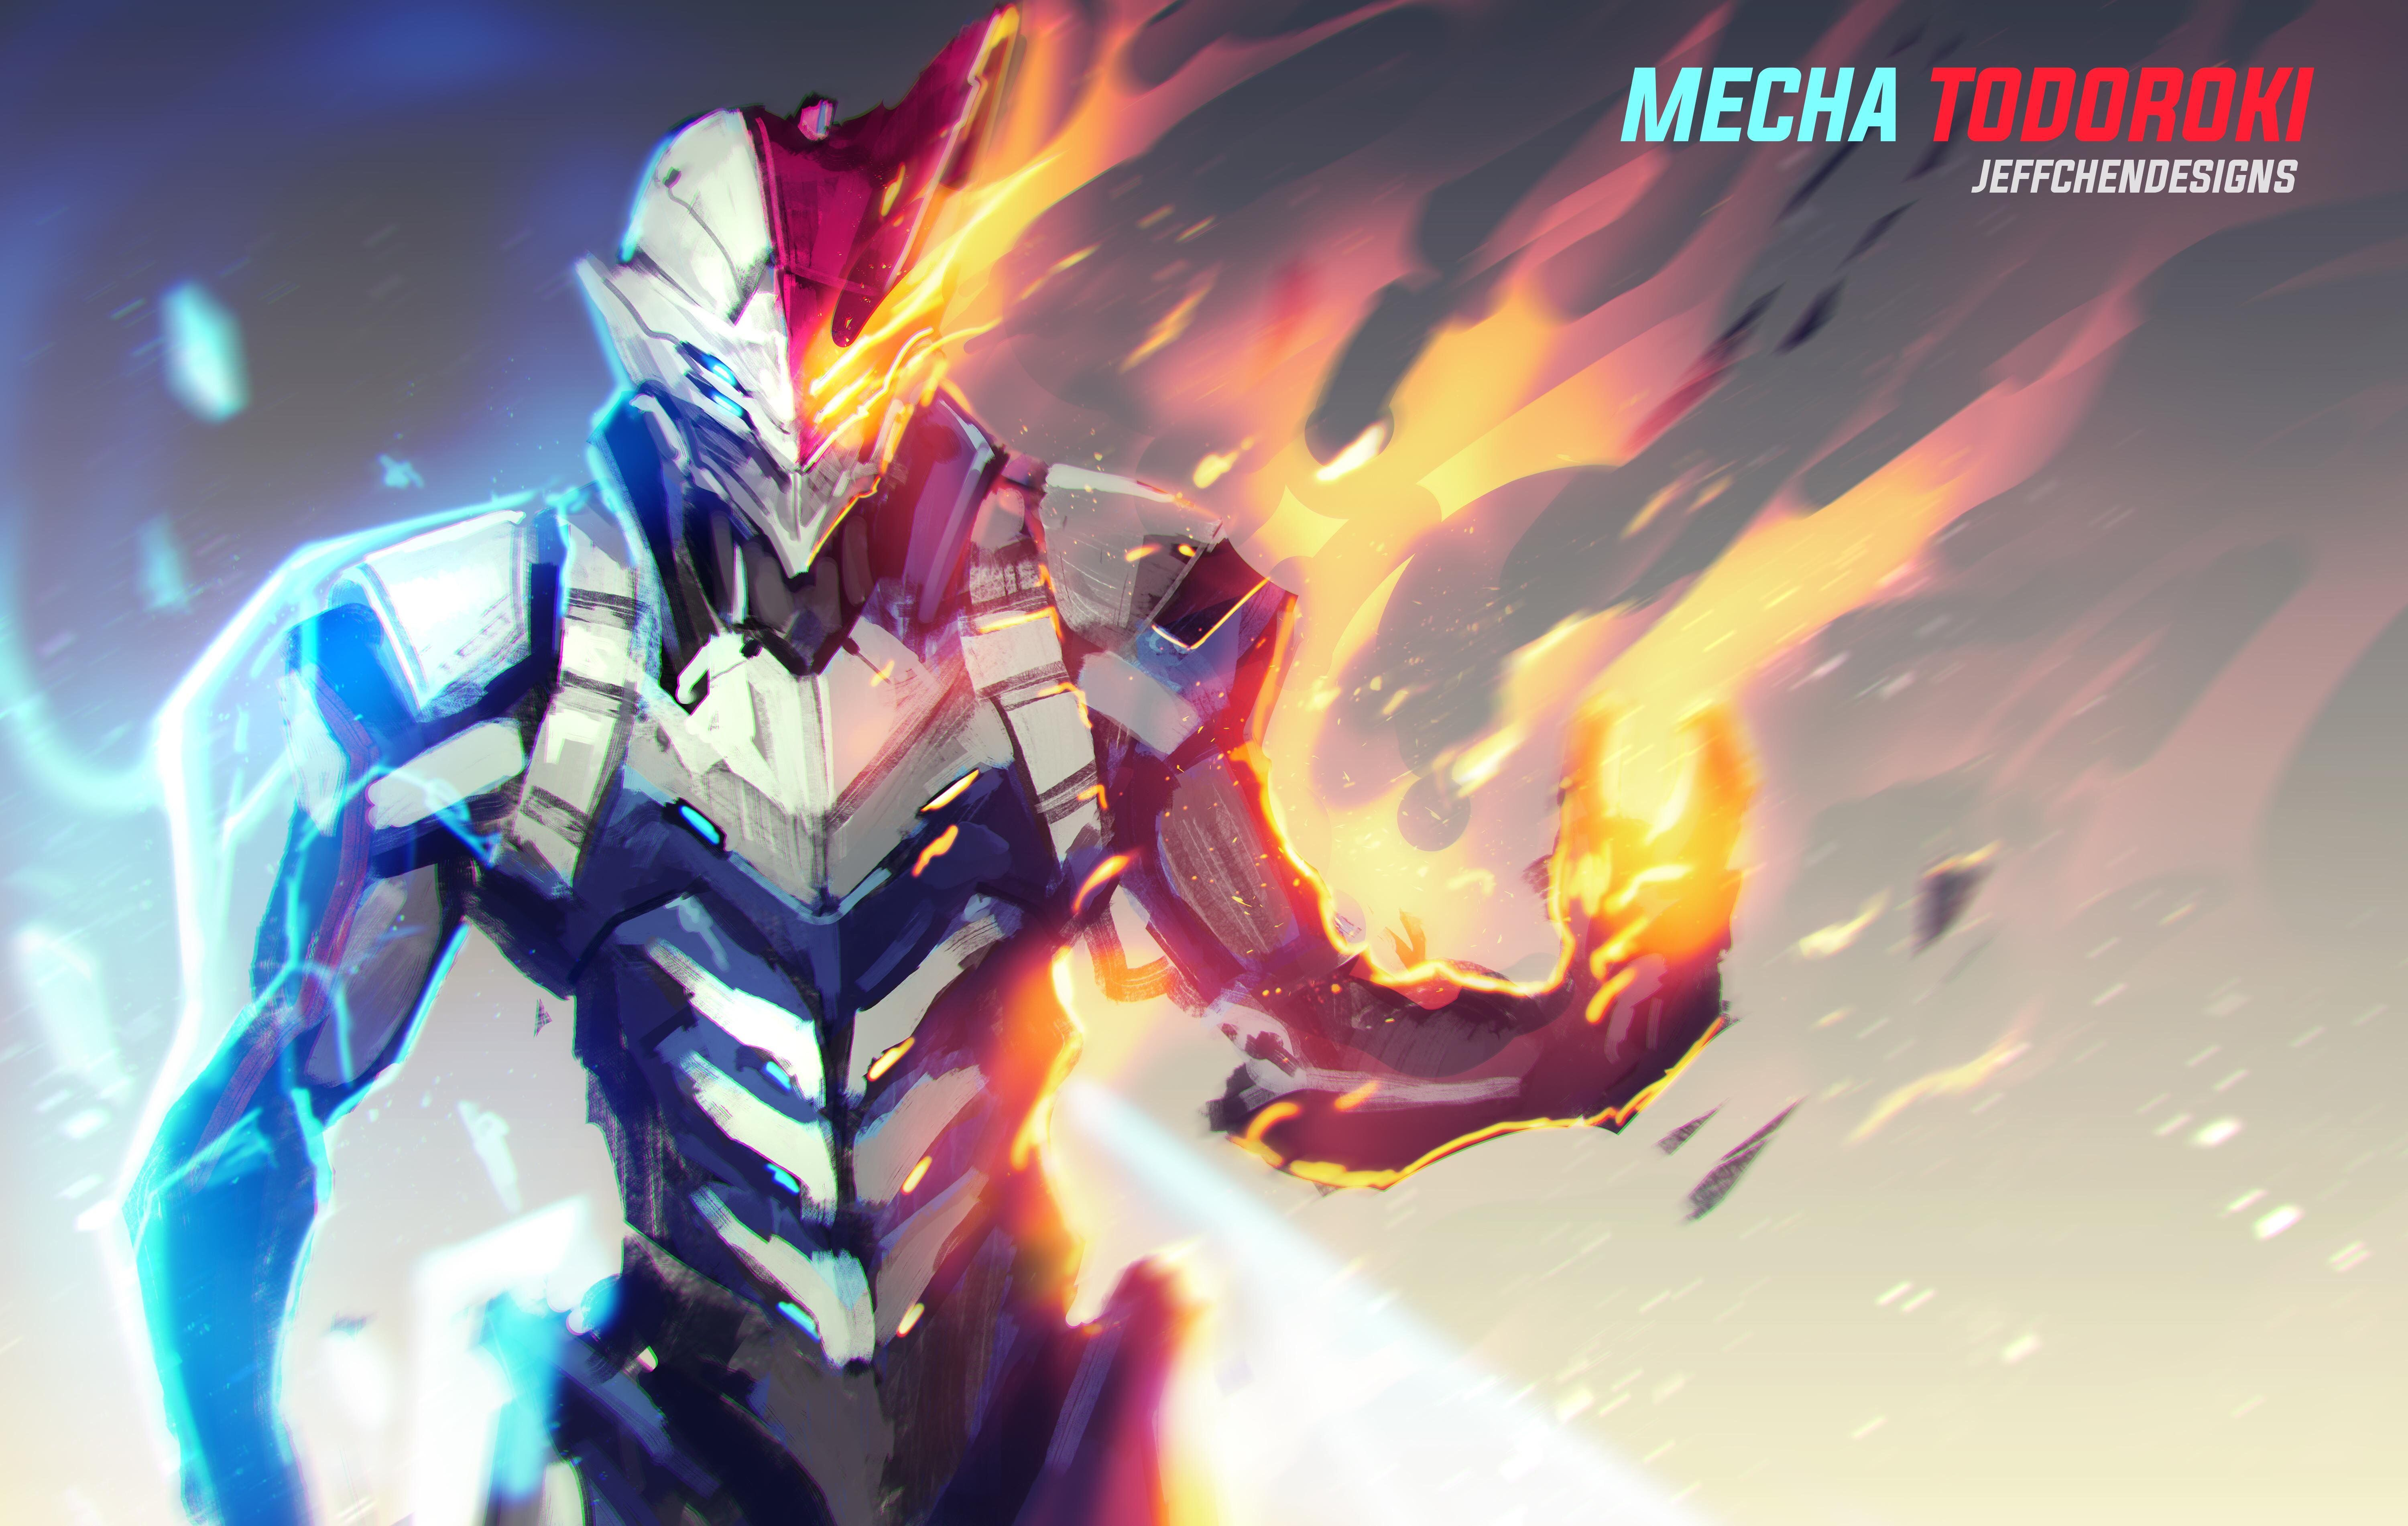 Mecha Todoroki Credit To Almightyjeff On Reddit With Images